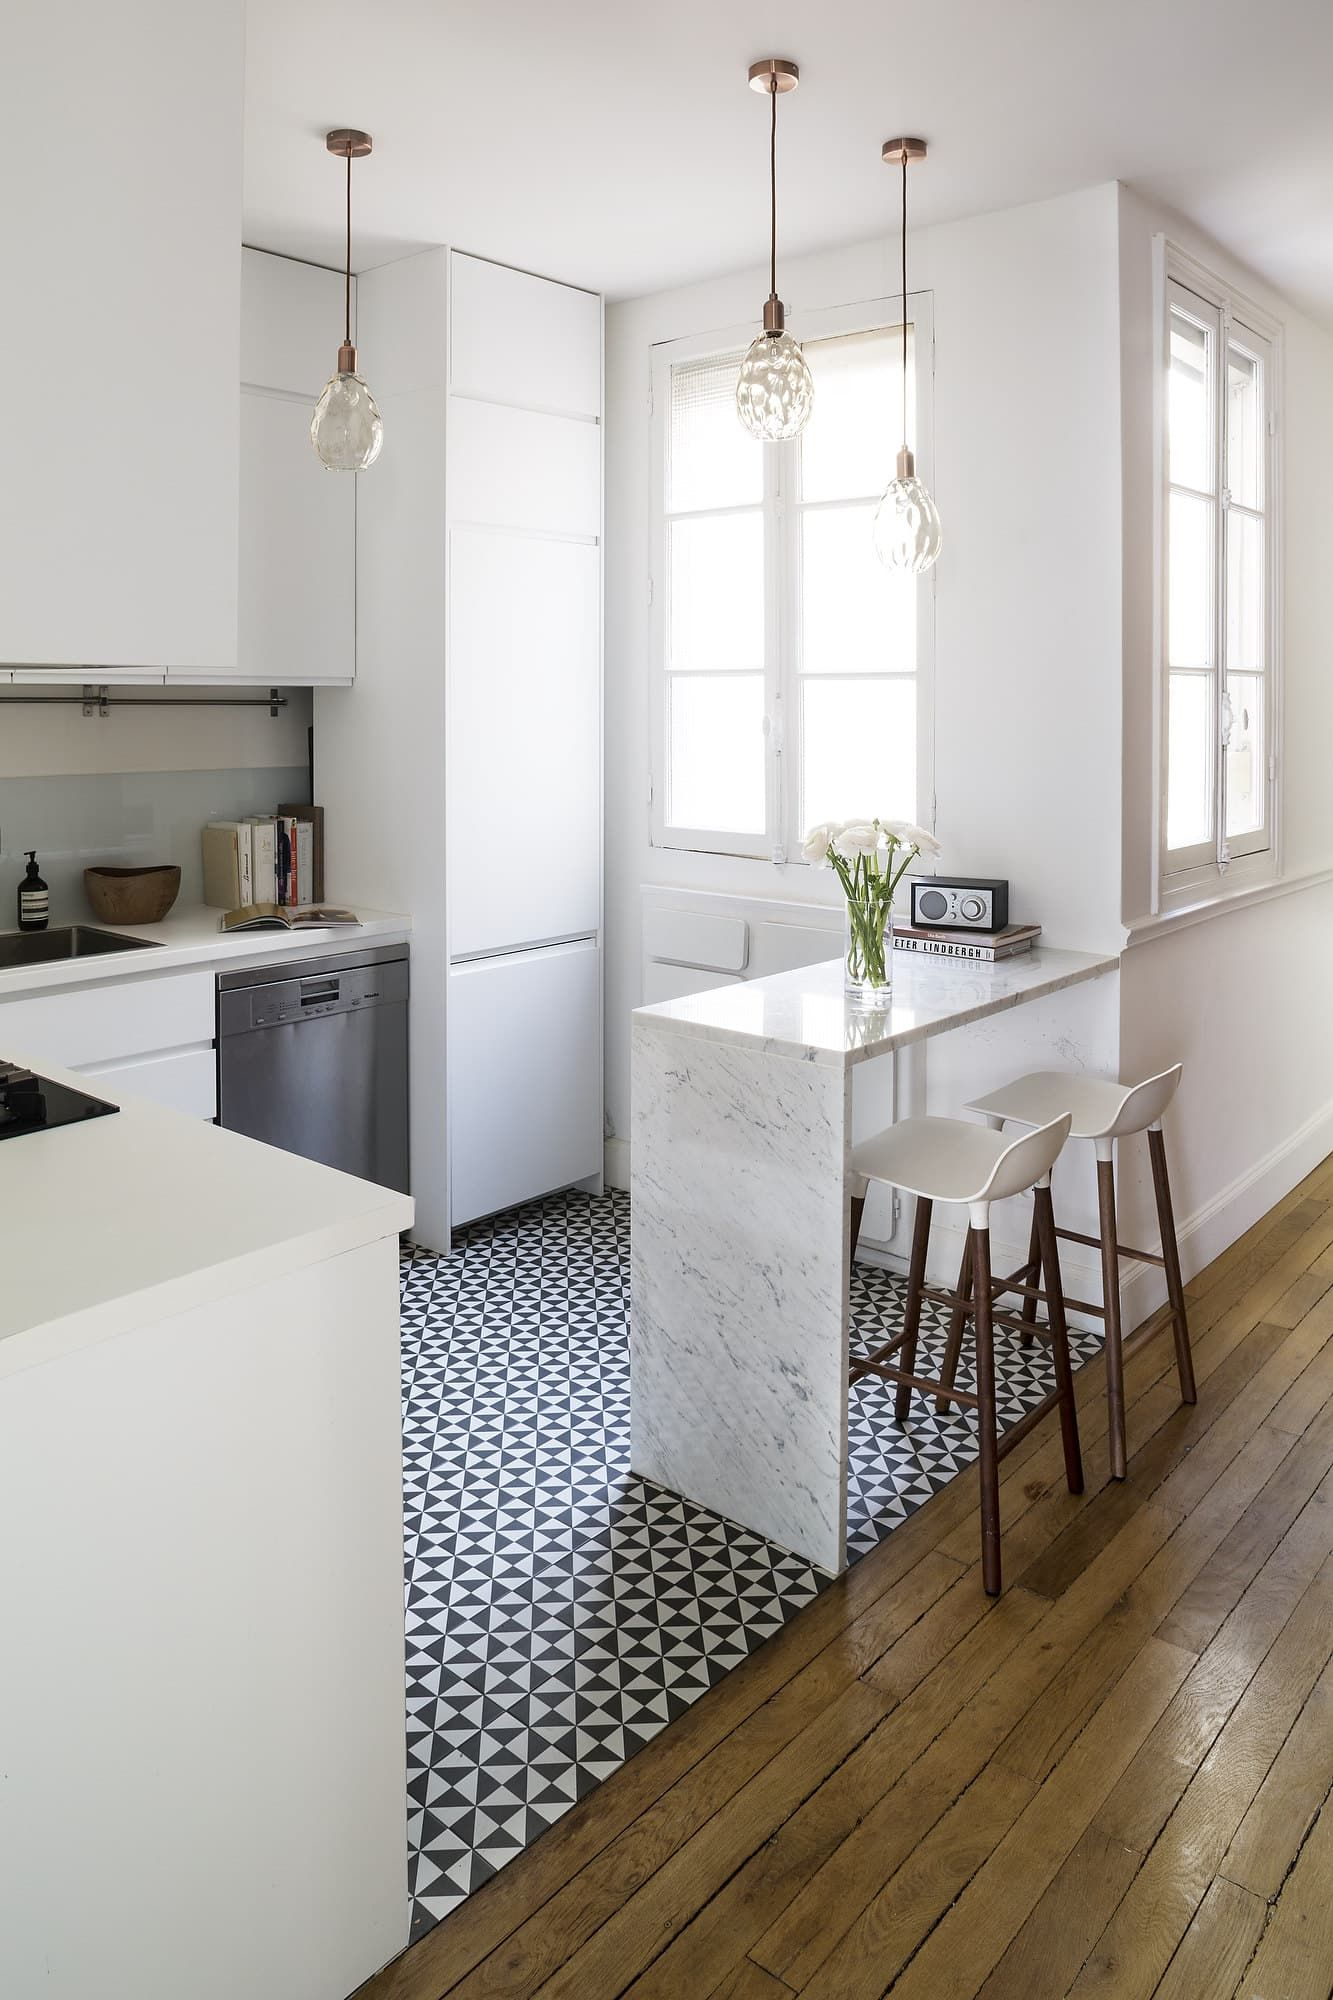 This Chic Paris Apartment Is a Perfect Mix of Old & New | Küche ...